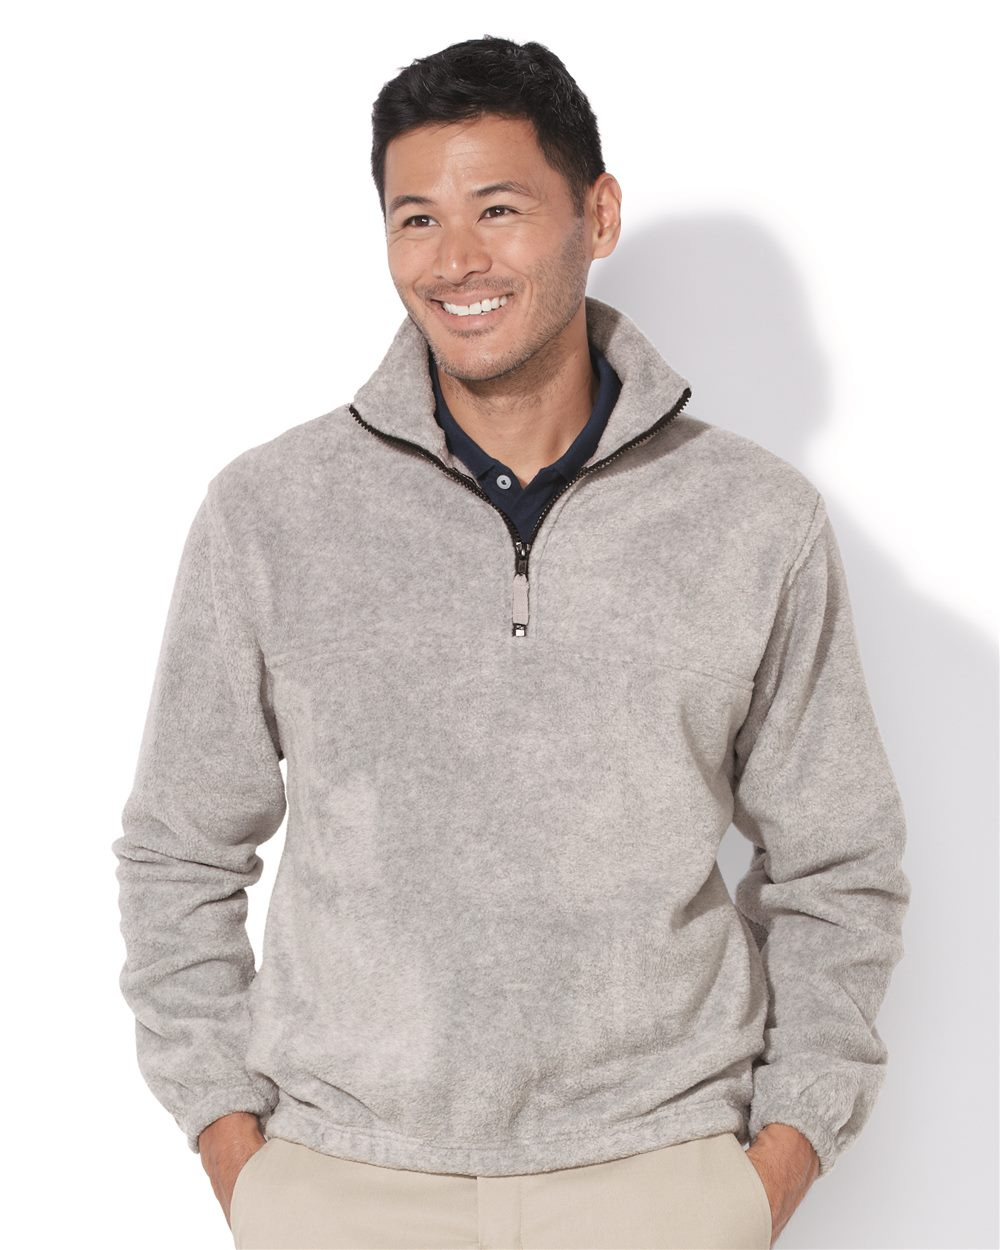 Sierra Pacific 3051 1/4 Zip Fleece Pullover